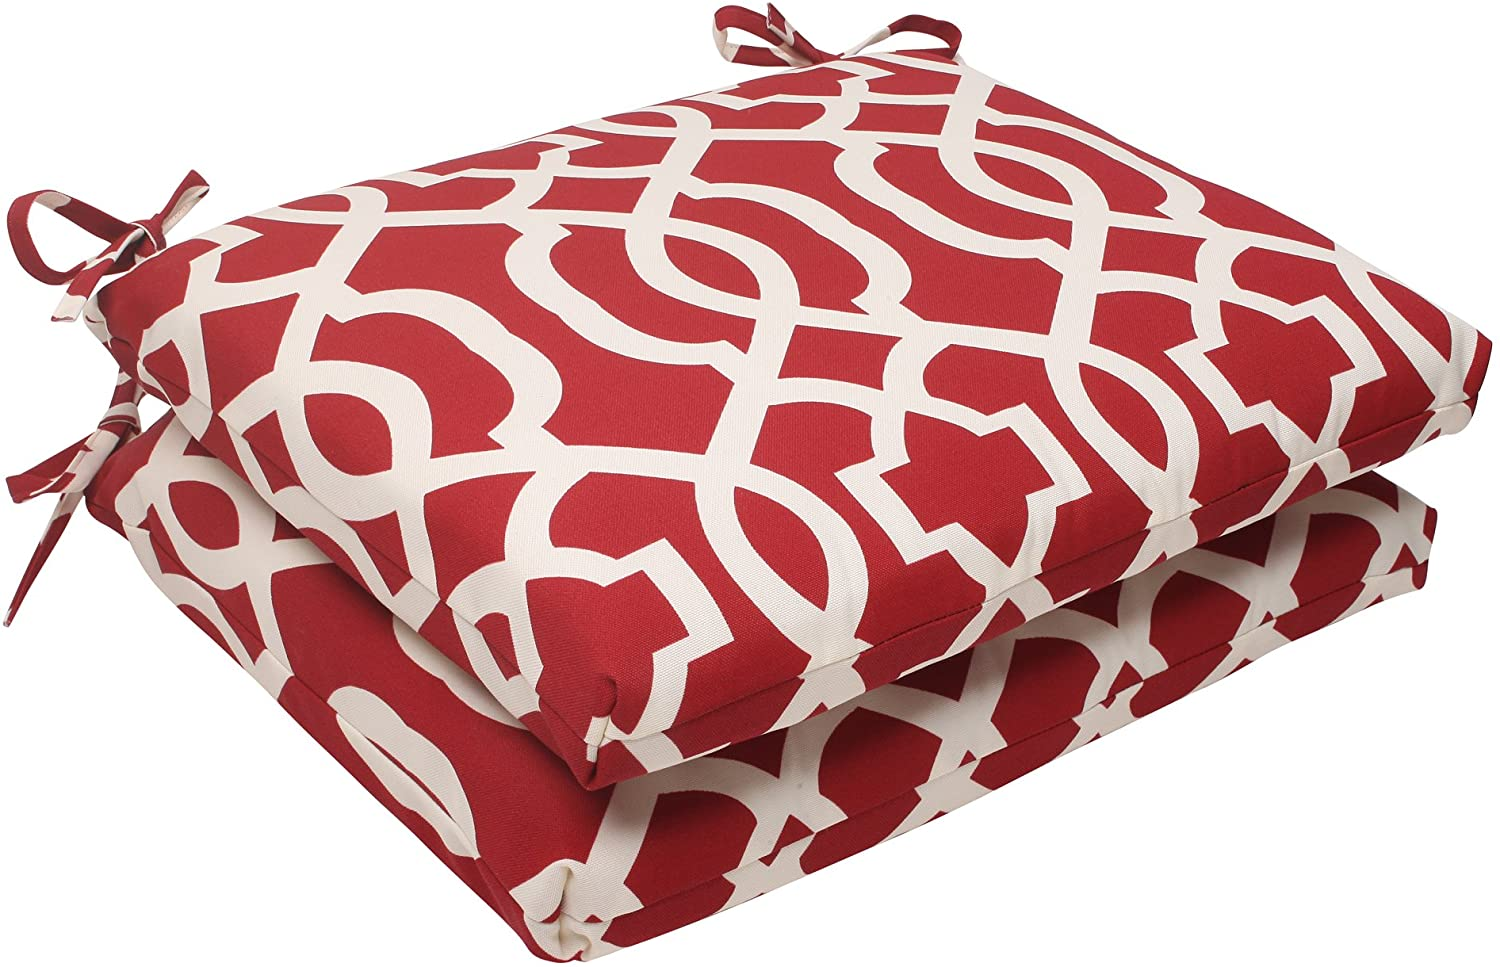 Pillow Perfect Outdoor/Indoor New Geo Square Corner Seat Cushions, 18.5 in. L X 16 in. W X 3 in. D, Red, 2 Pack